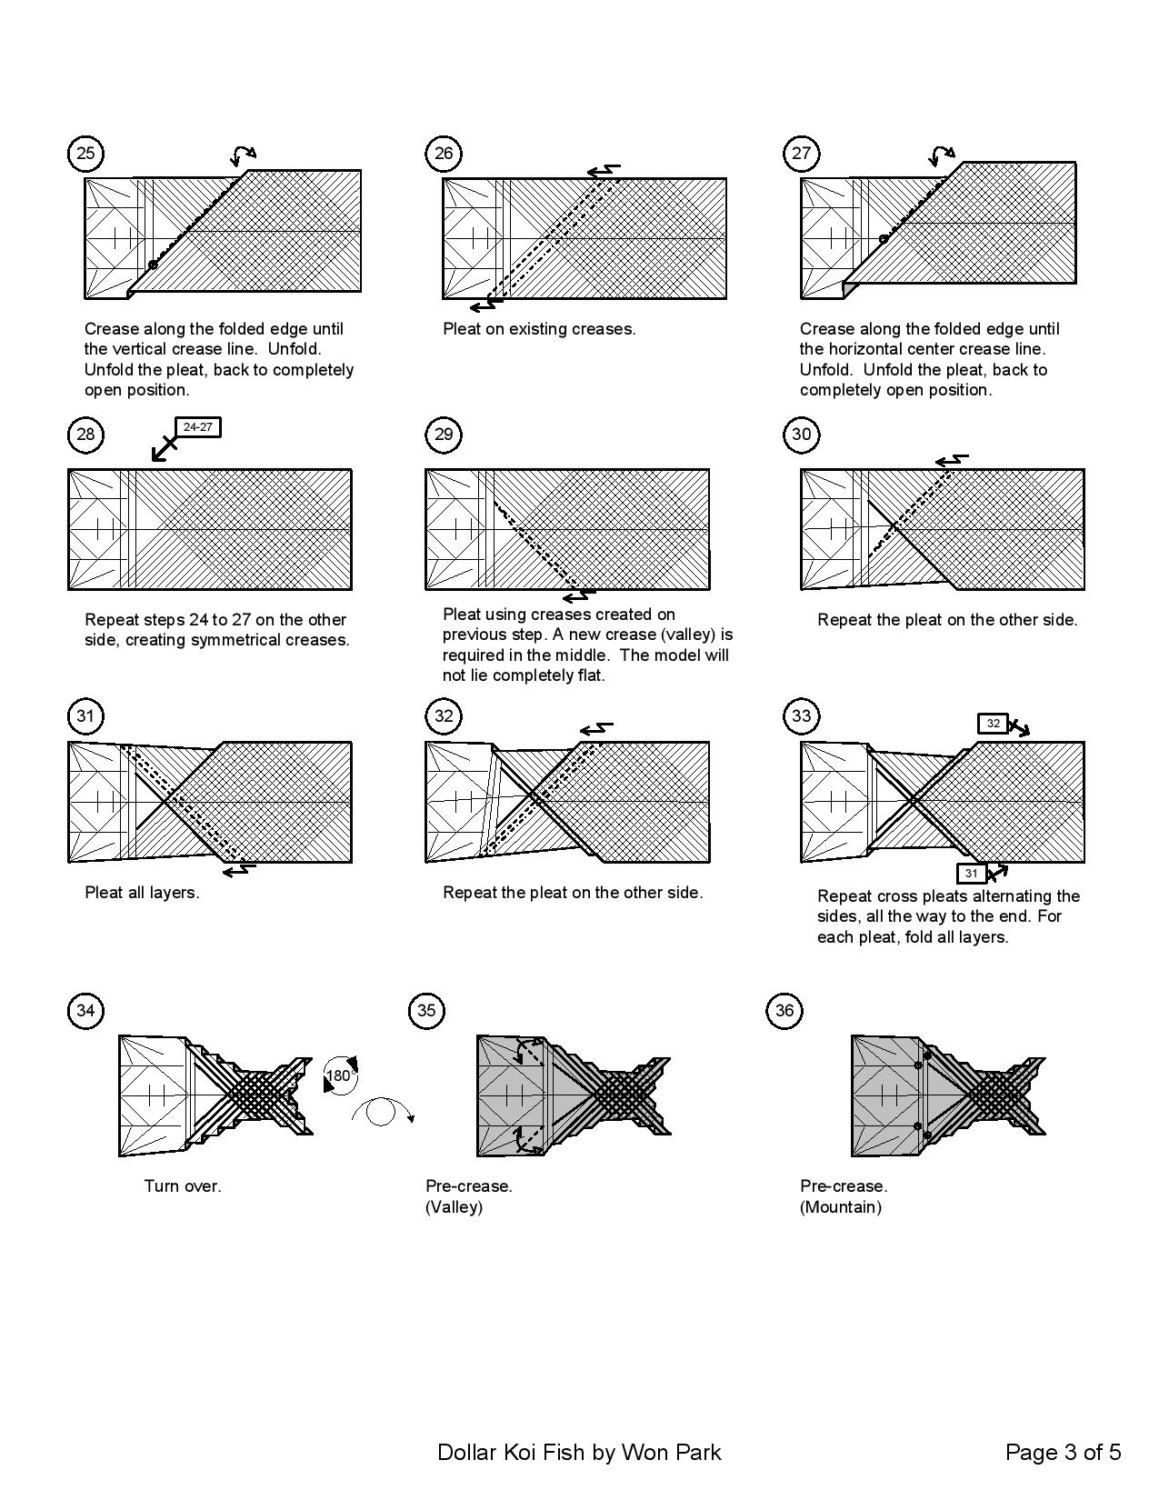 koi fish diagram 3 of 5 money origami dollar bill art